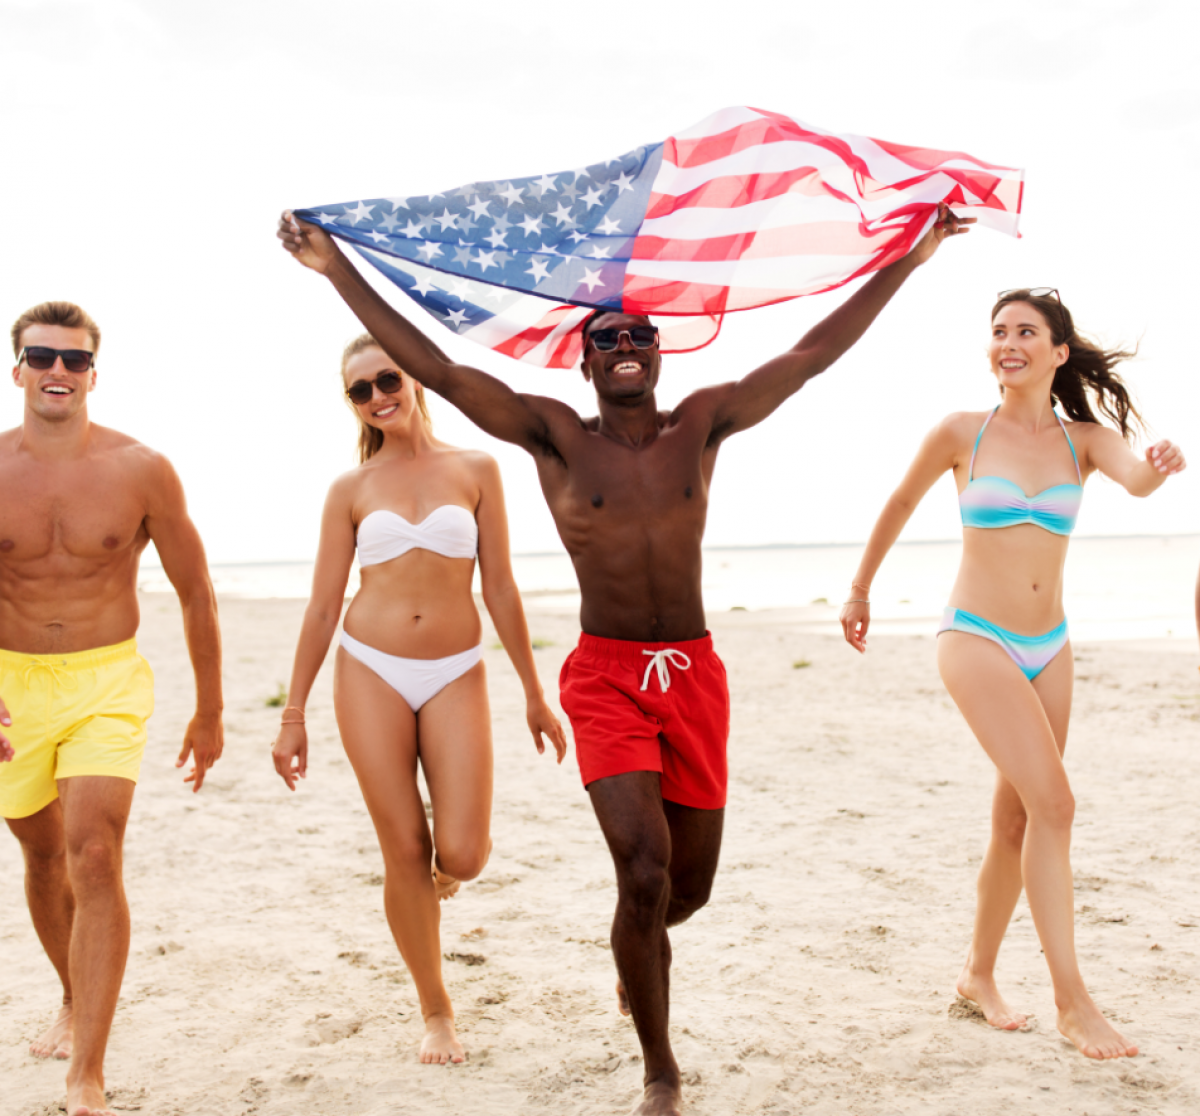 man carrying american flag waving on beach with friends